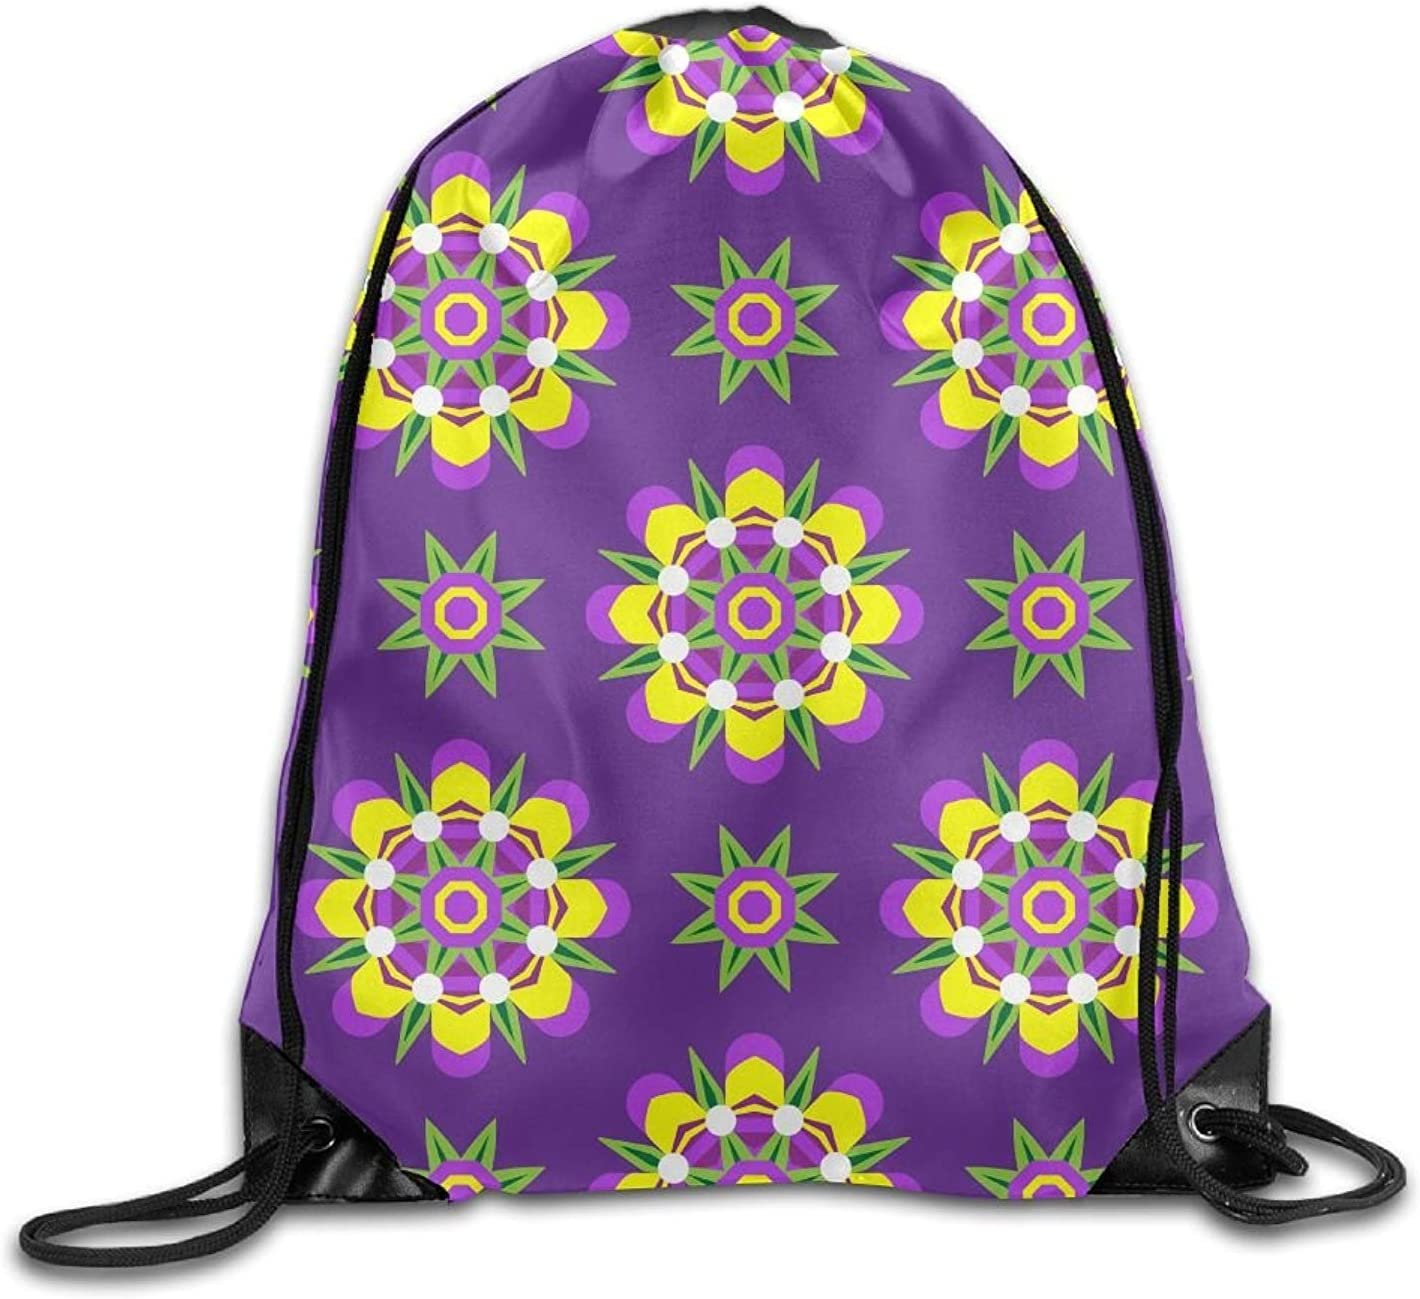 Gym Drawstring Bags Floral Pattern Seamless Draw Rope Shopping Travel Backpack Tote Student Camping